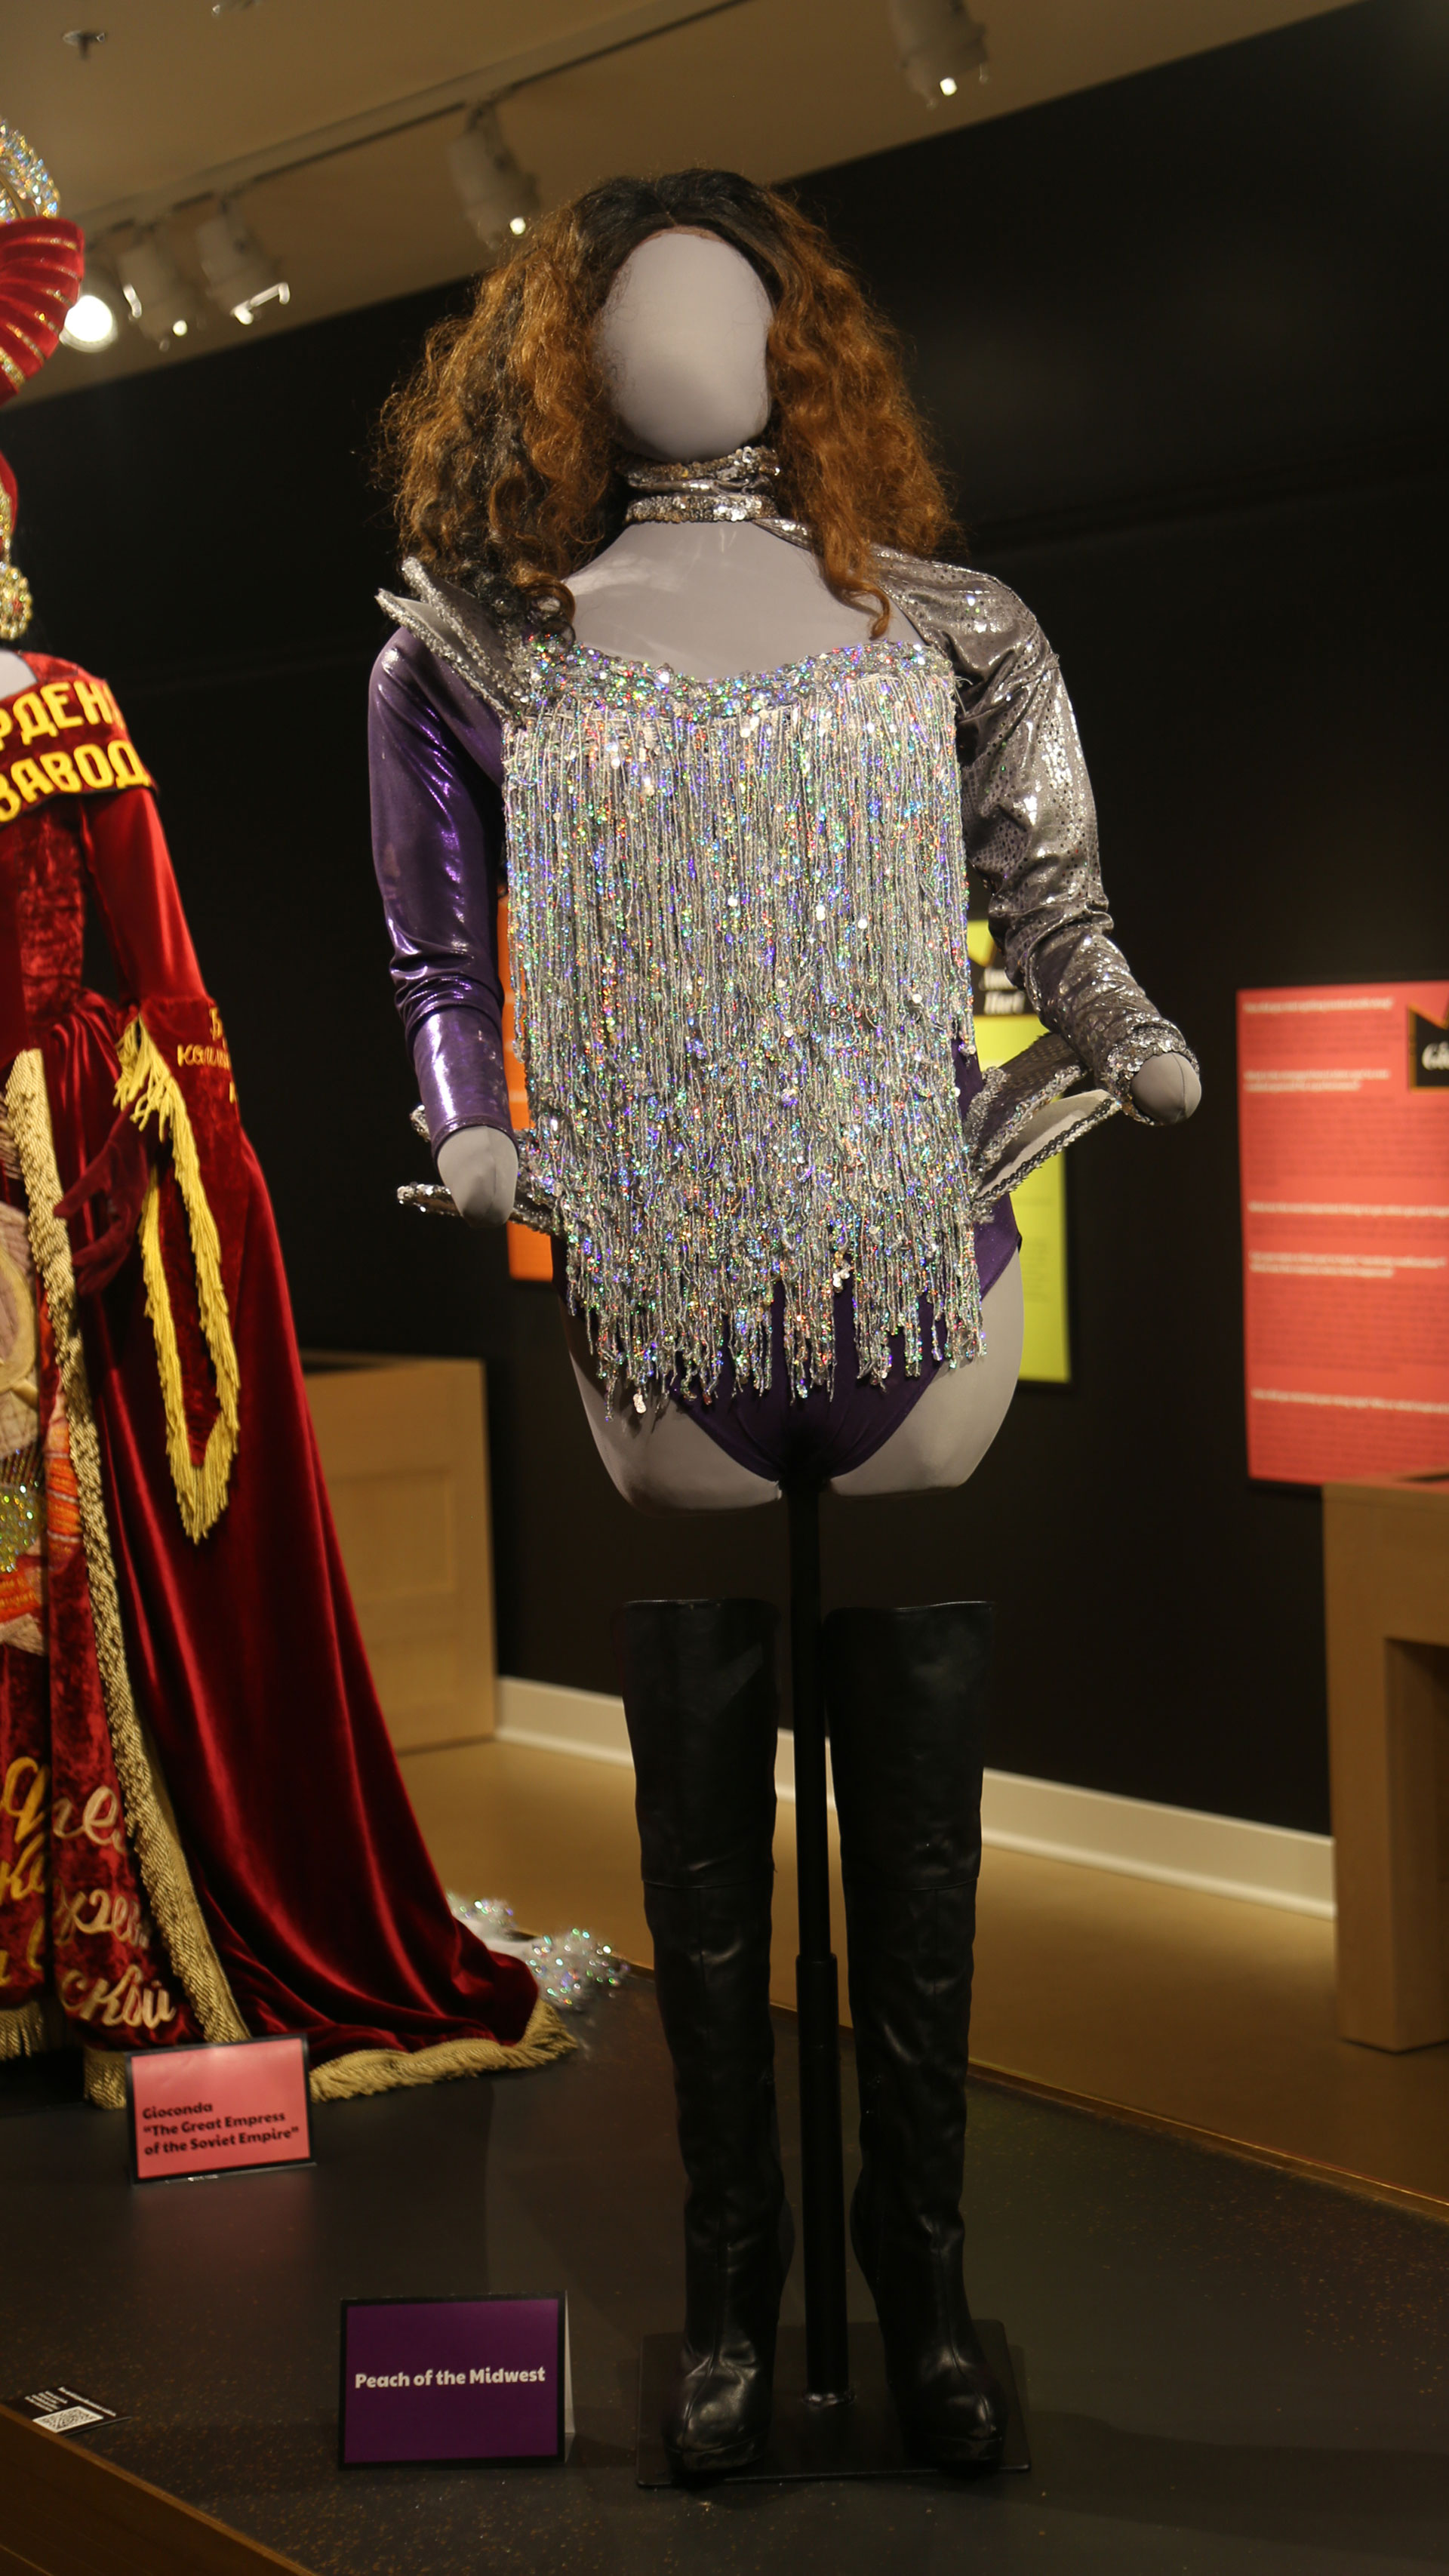 full view of mannequin with a sparkly costume with one purple sleeve with black boots